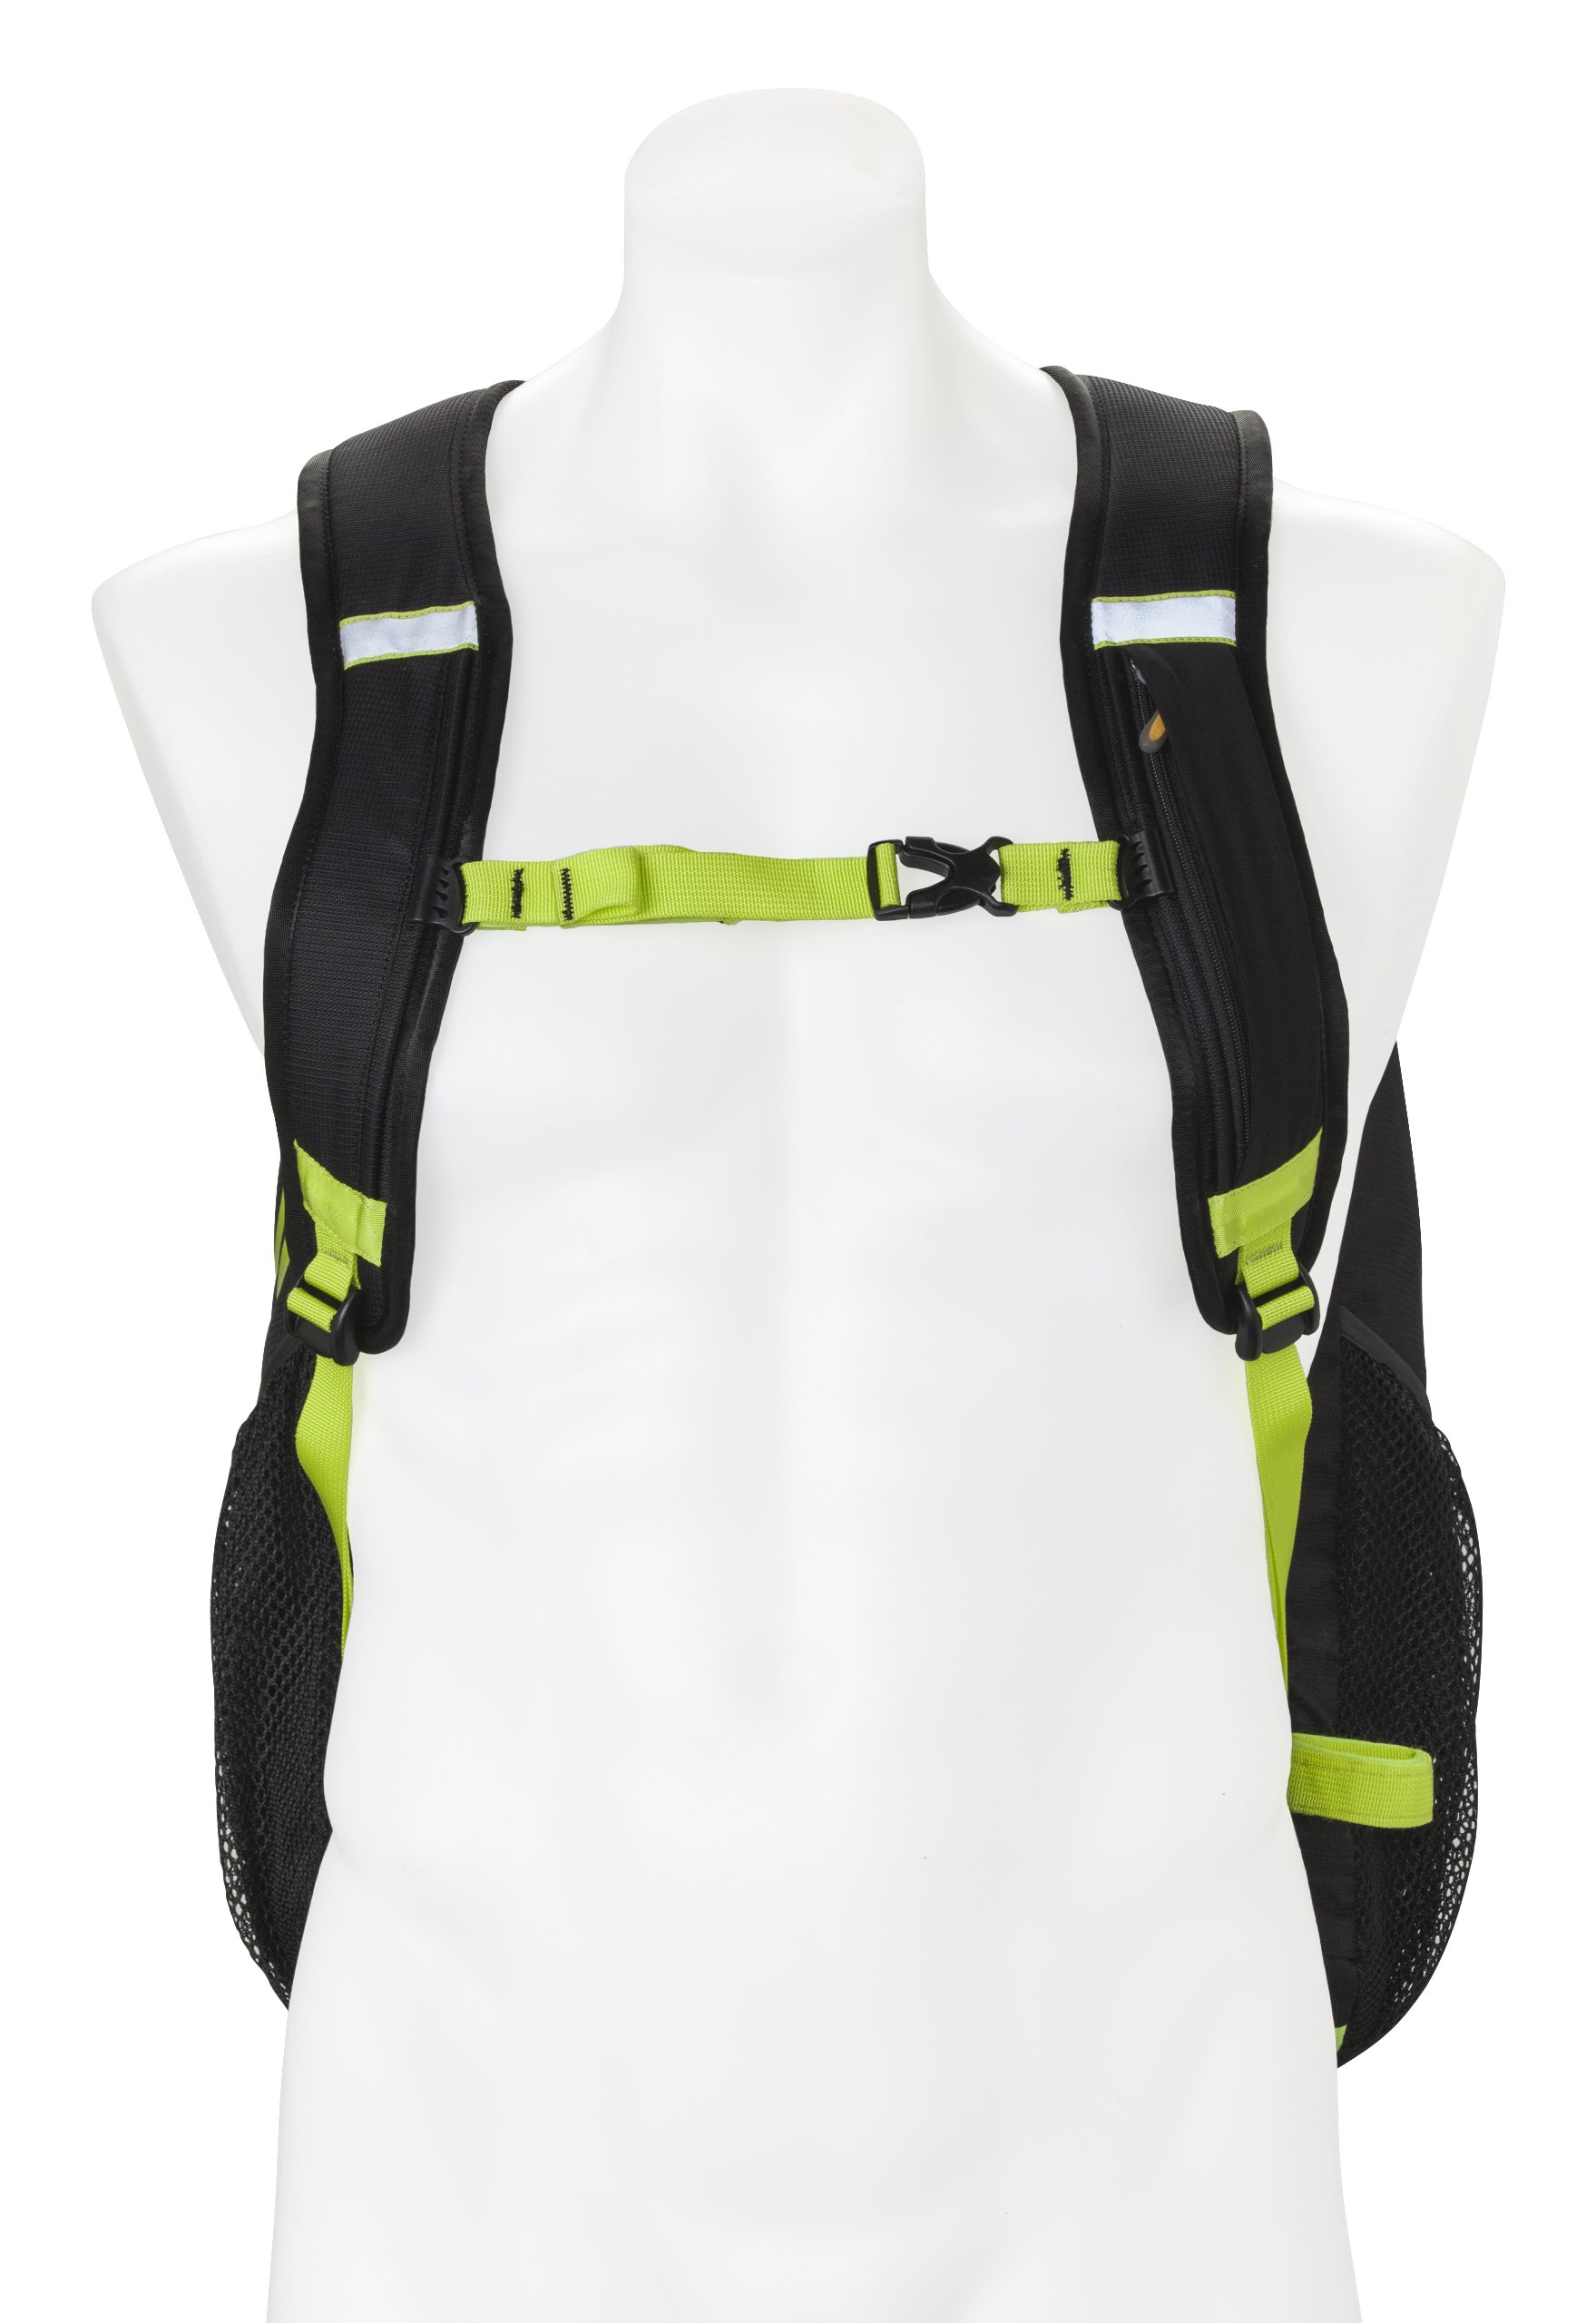 Nathan Flight Control Bag, Black/Sulphur Spring, One Size by Nathan (Image #3)